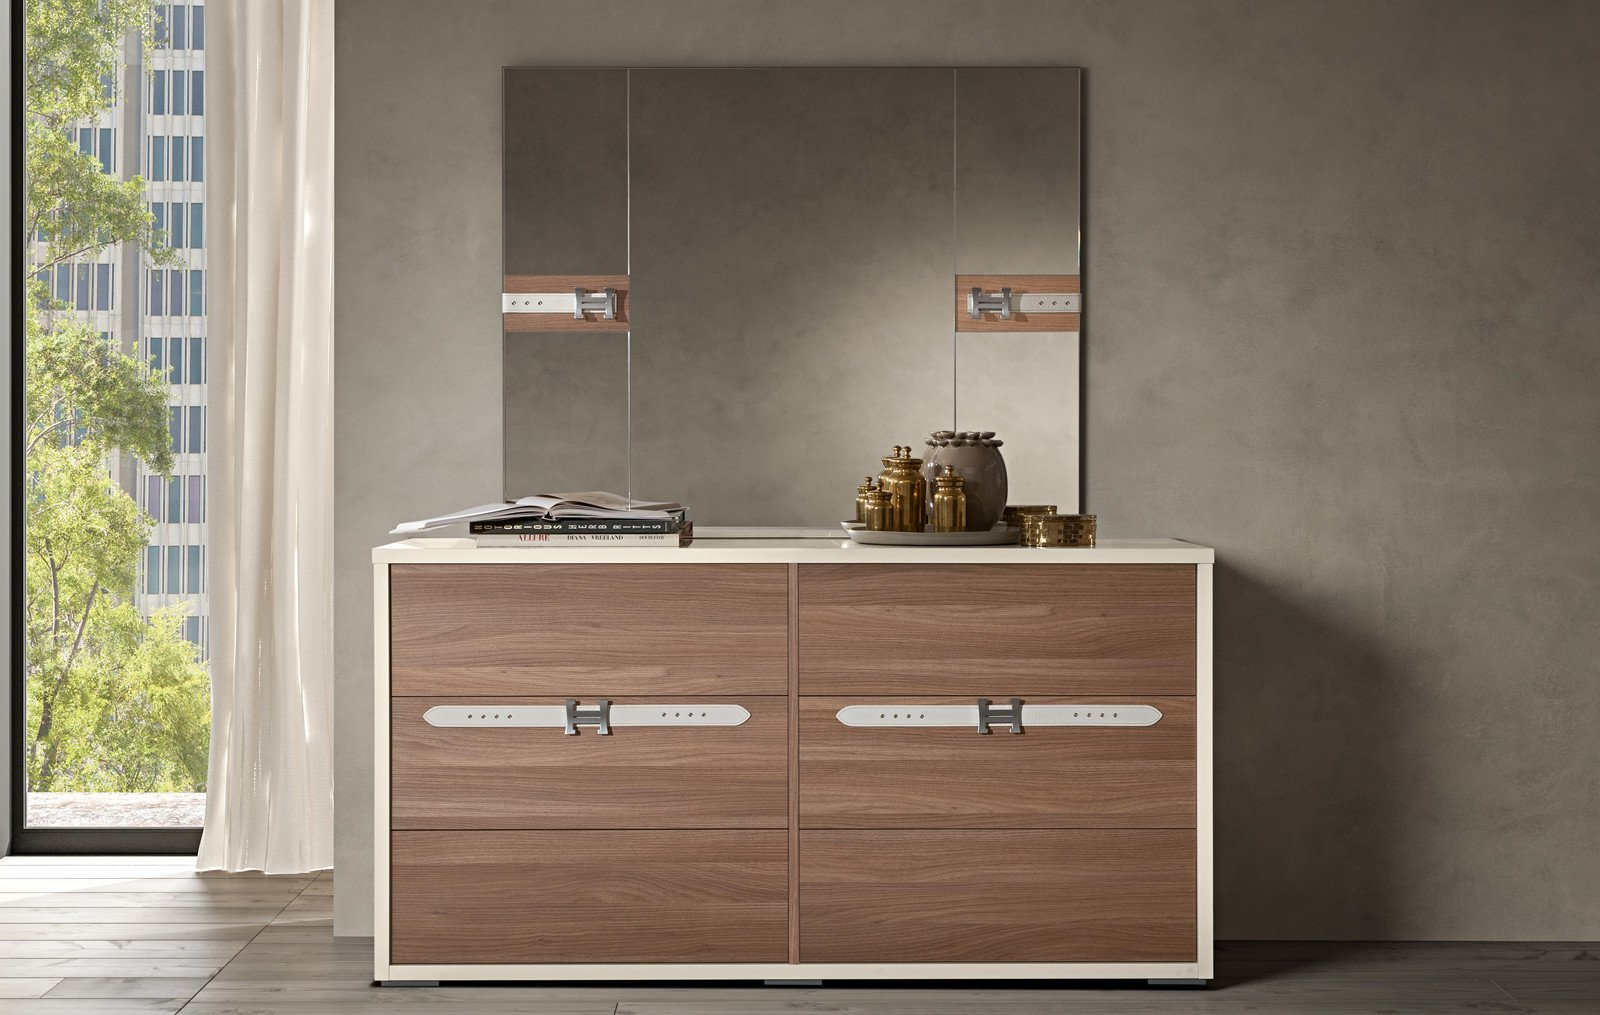 Monte Carlo Bedroom Set Elegant Evolution Dresser Chest Modern Bedrooms Bedroom Furniture